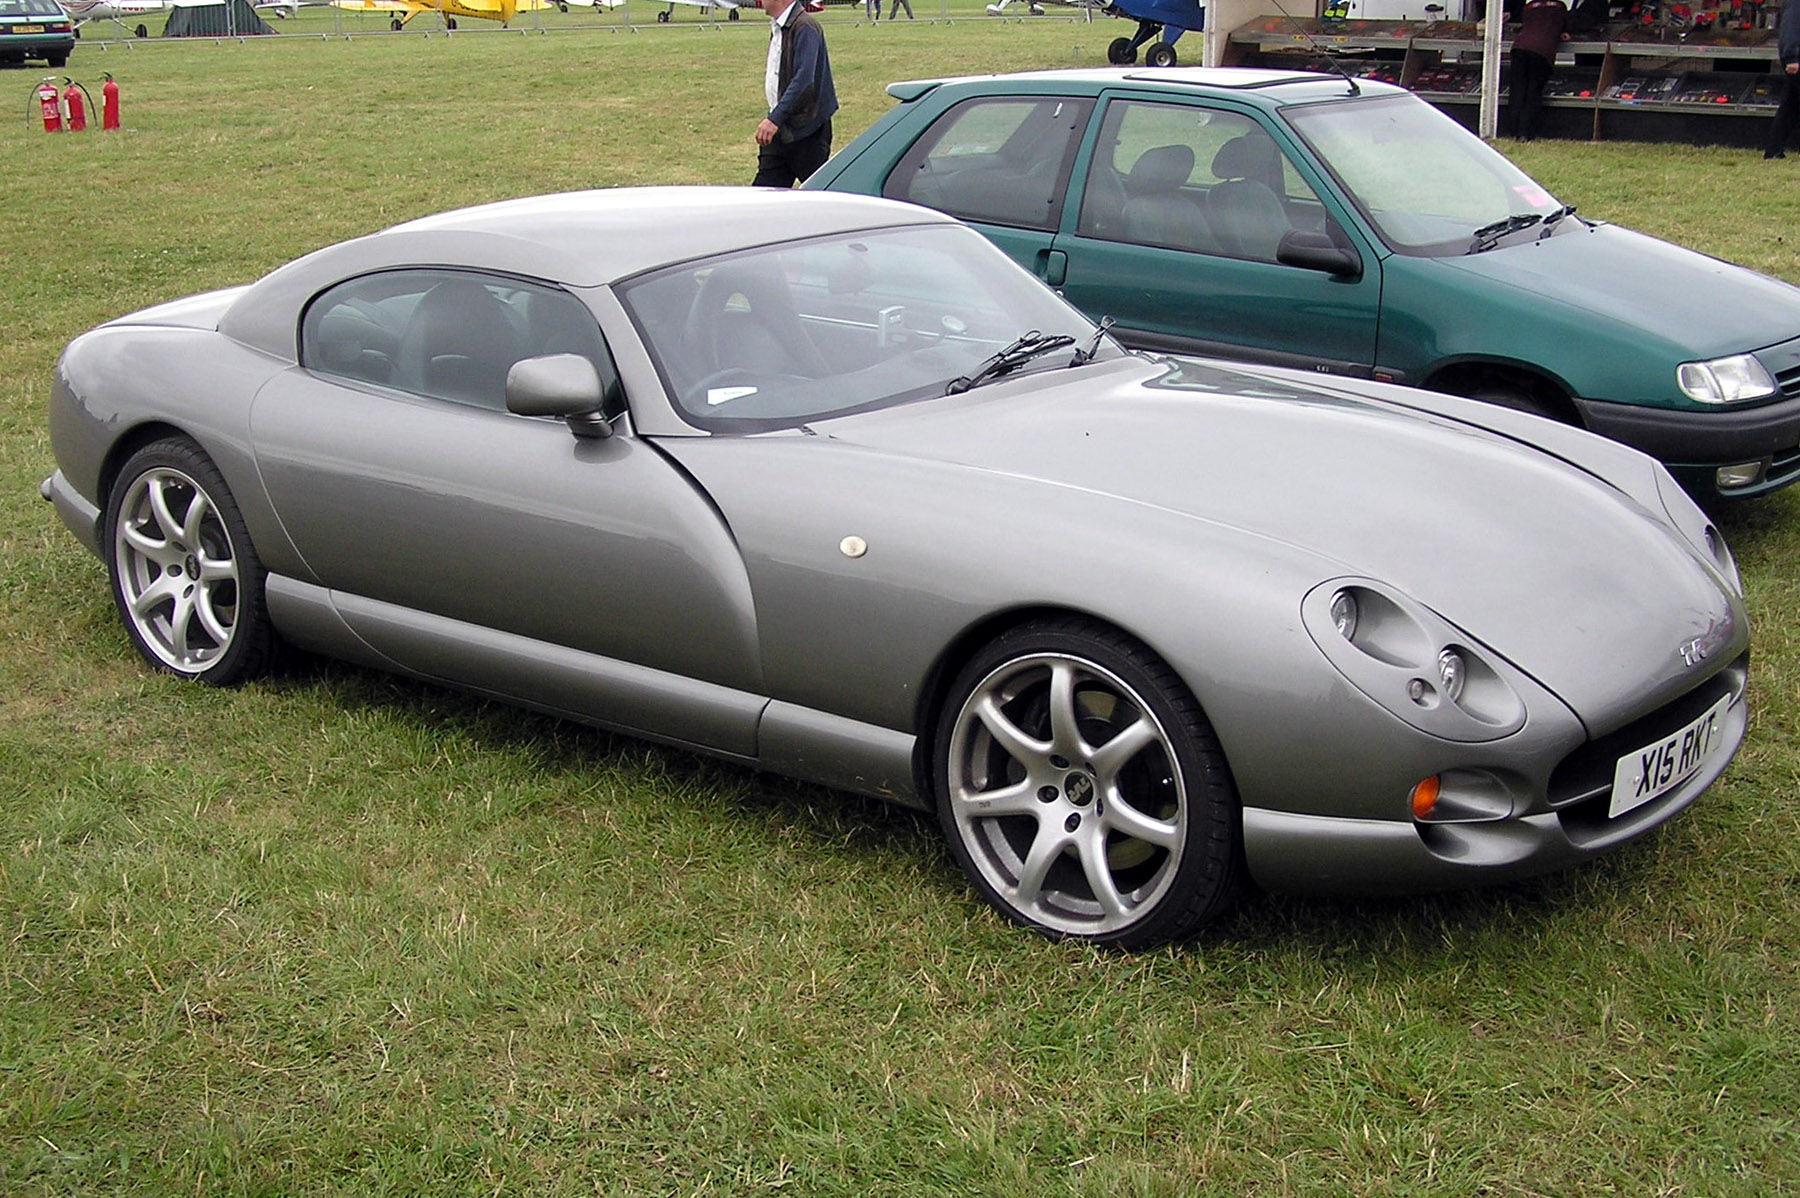 1996 TVR Griffith #8